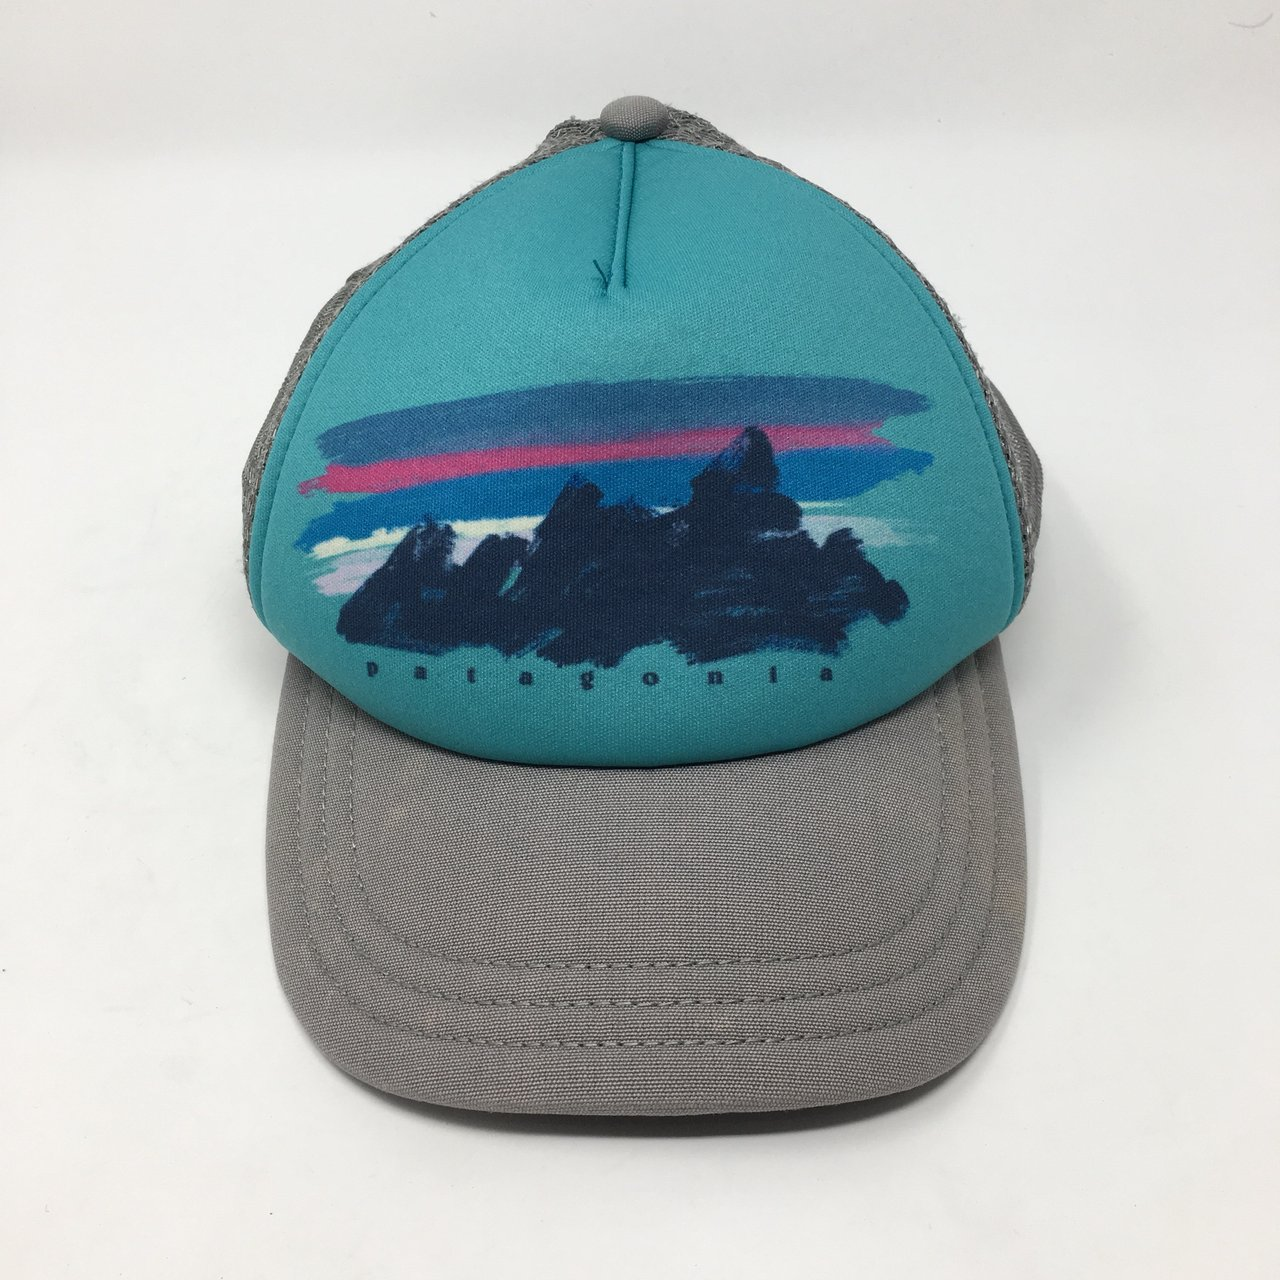 9899864dcd4 Patagonia SnapBack. Few marks on.  20 · Patagonia cap purple and blue